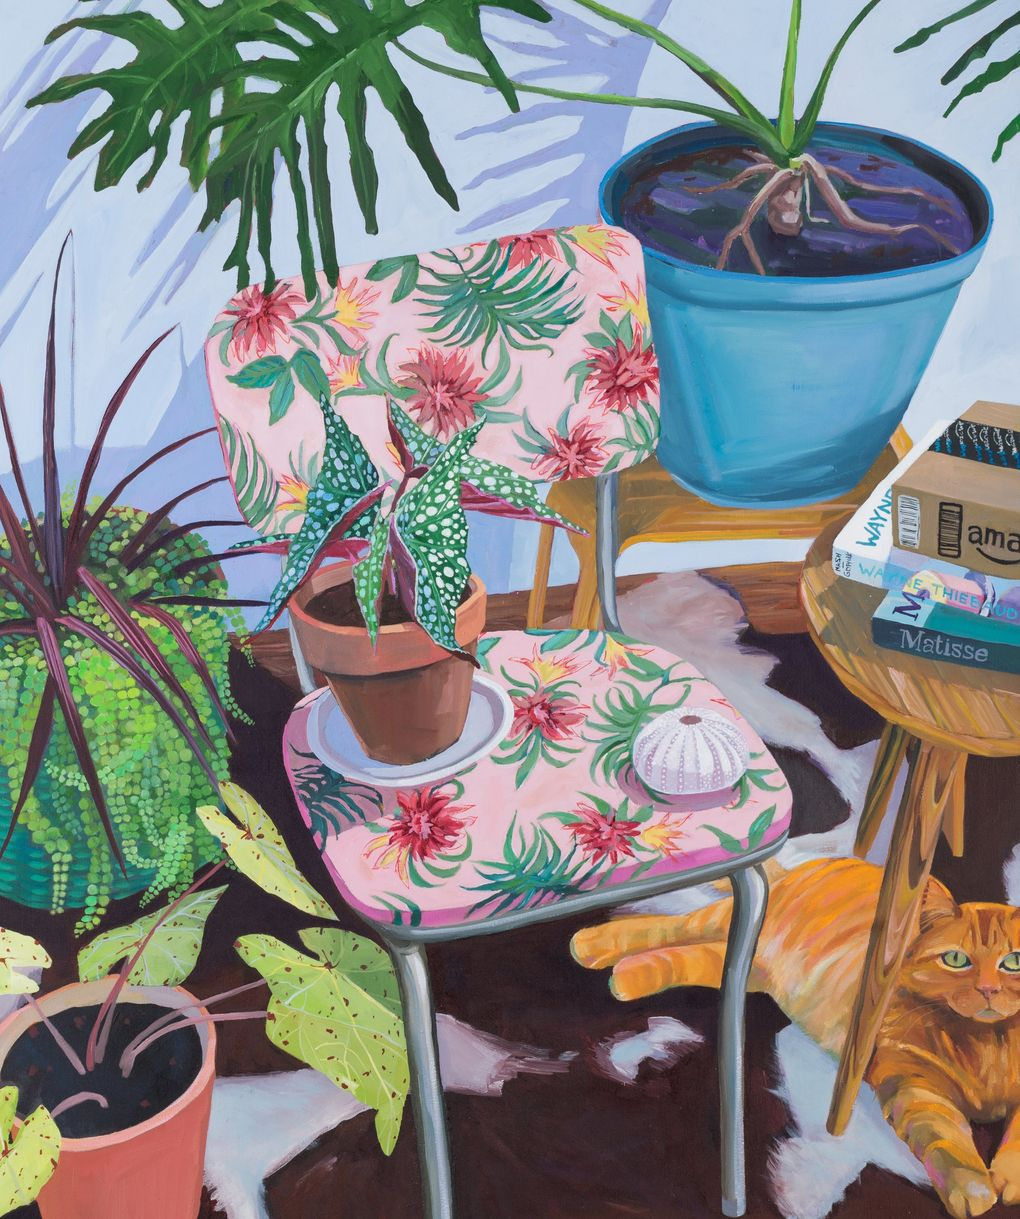 """Still life painting takes on a new meaning amid the pandemic, as in Rachel Campbell's """"Precious Little Things."""" (Courtesy of ZINC Contemporary)"""